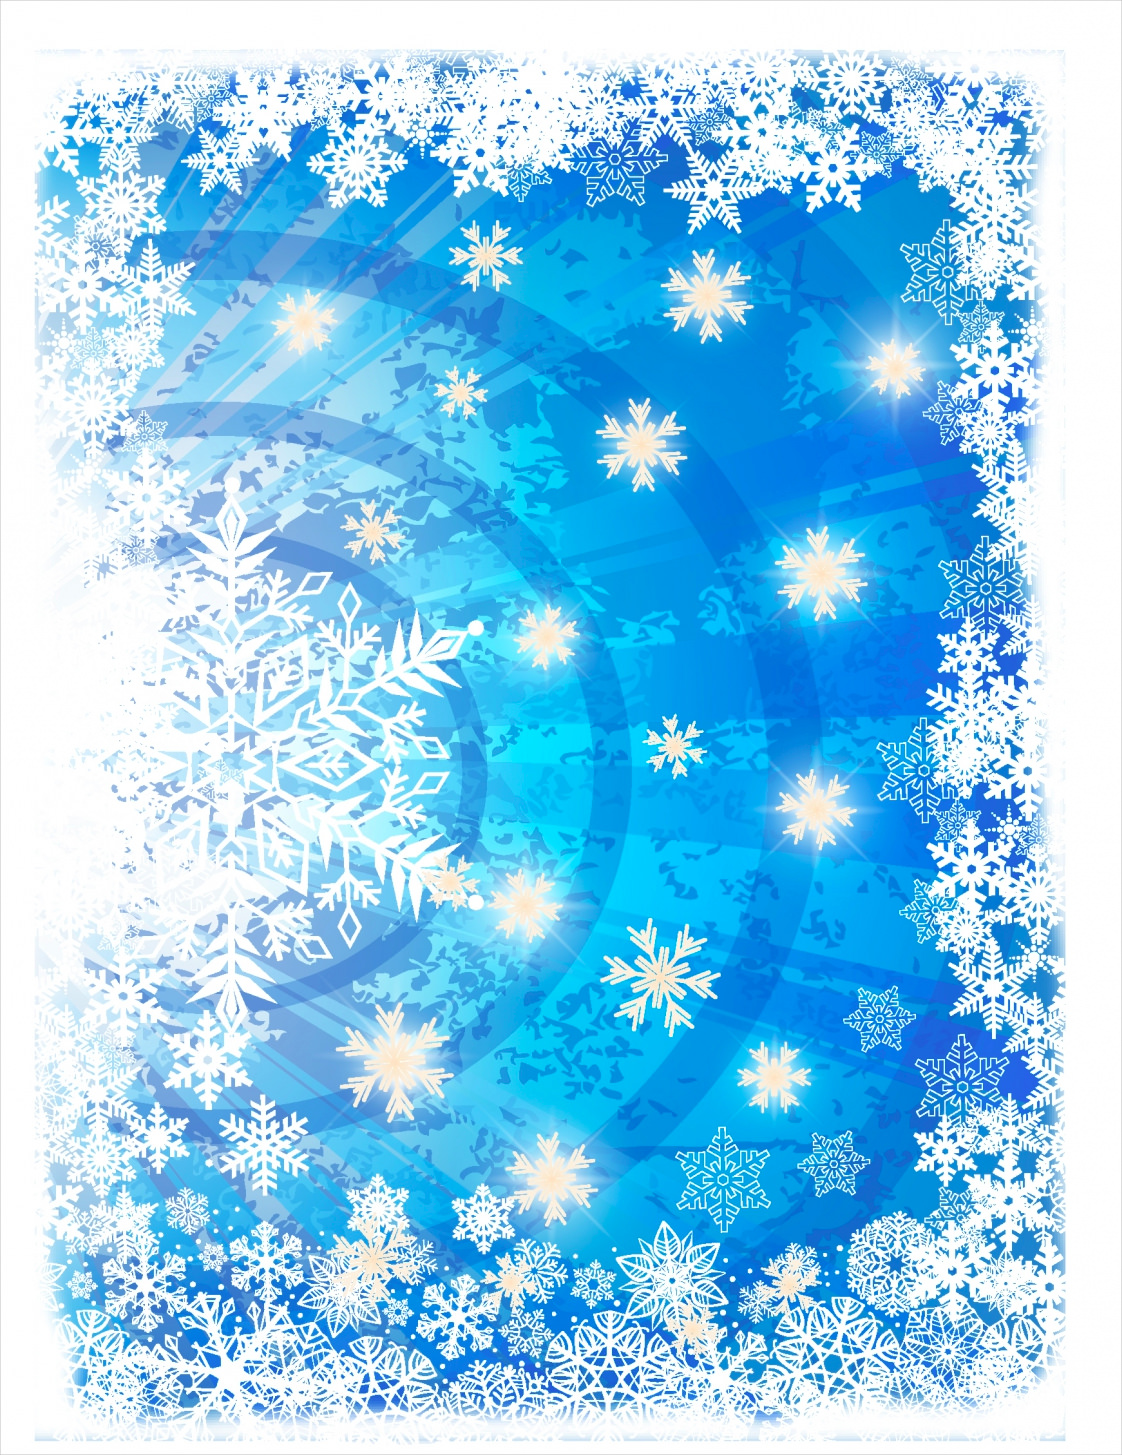 Blue & White Winter Background For Download